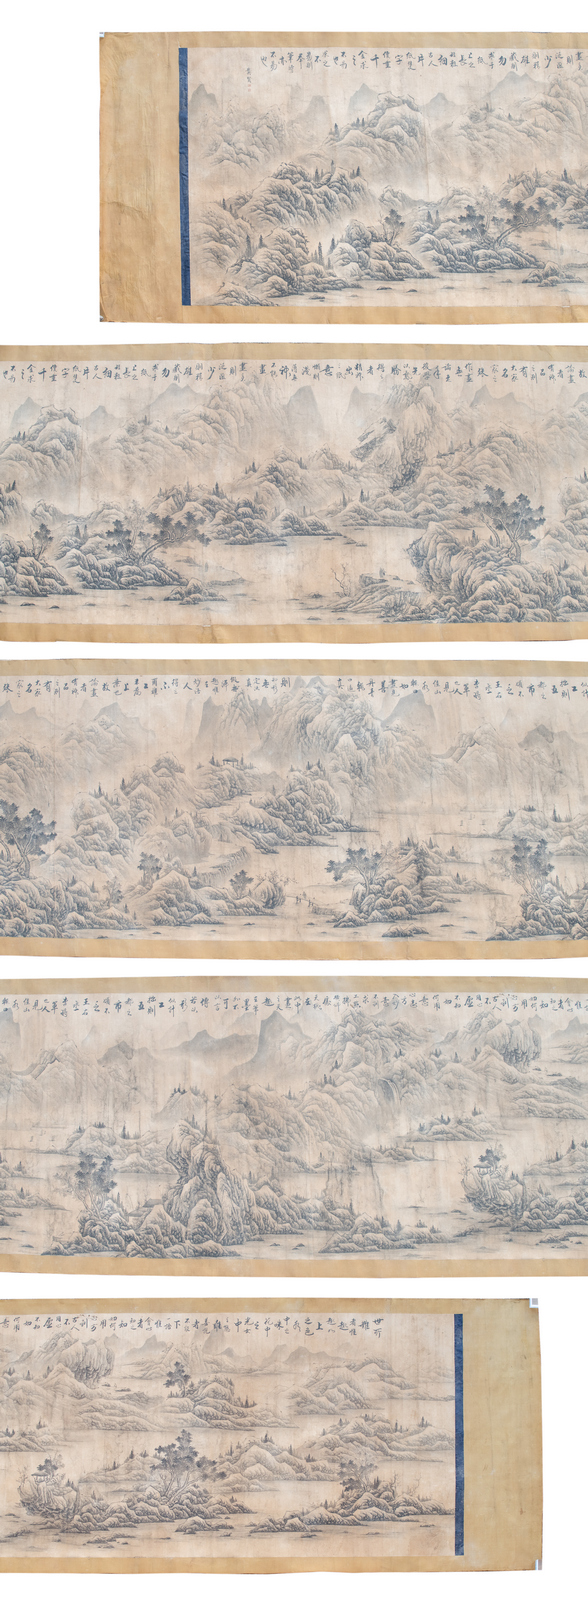 An exceptional Chinese scroll depicting figures in a vast mountainous river landscape, with a calligraphic text, signed, ink on paper on textile, 140 x 1040 (without mount) - 158 x 1086 cm (with mount)